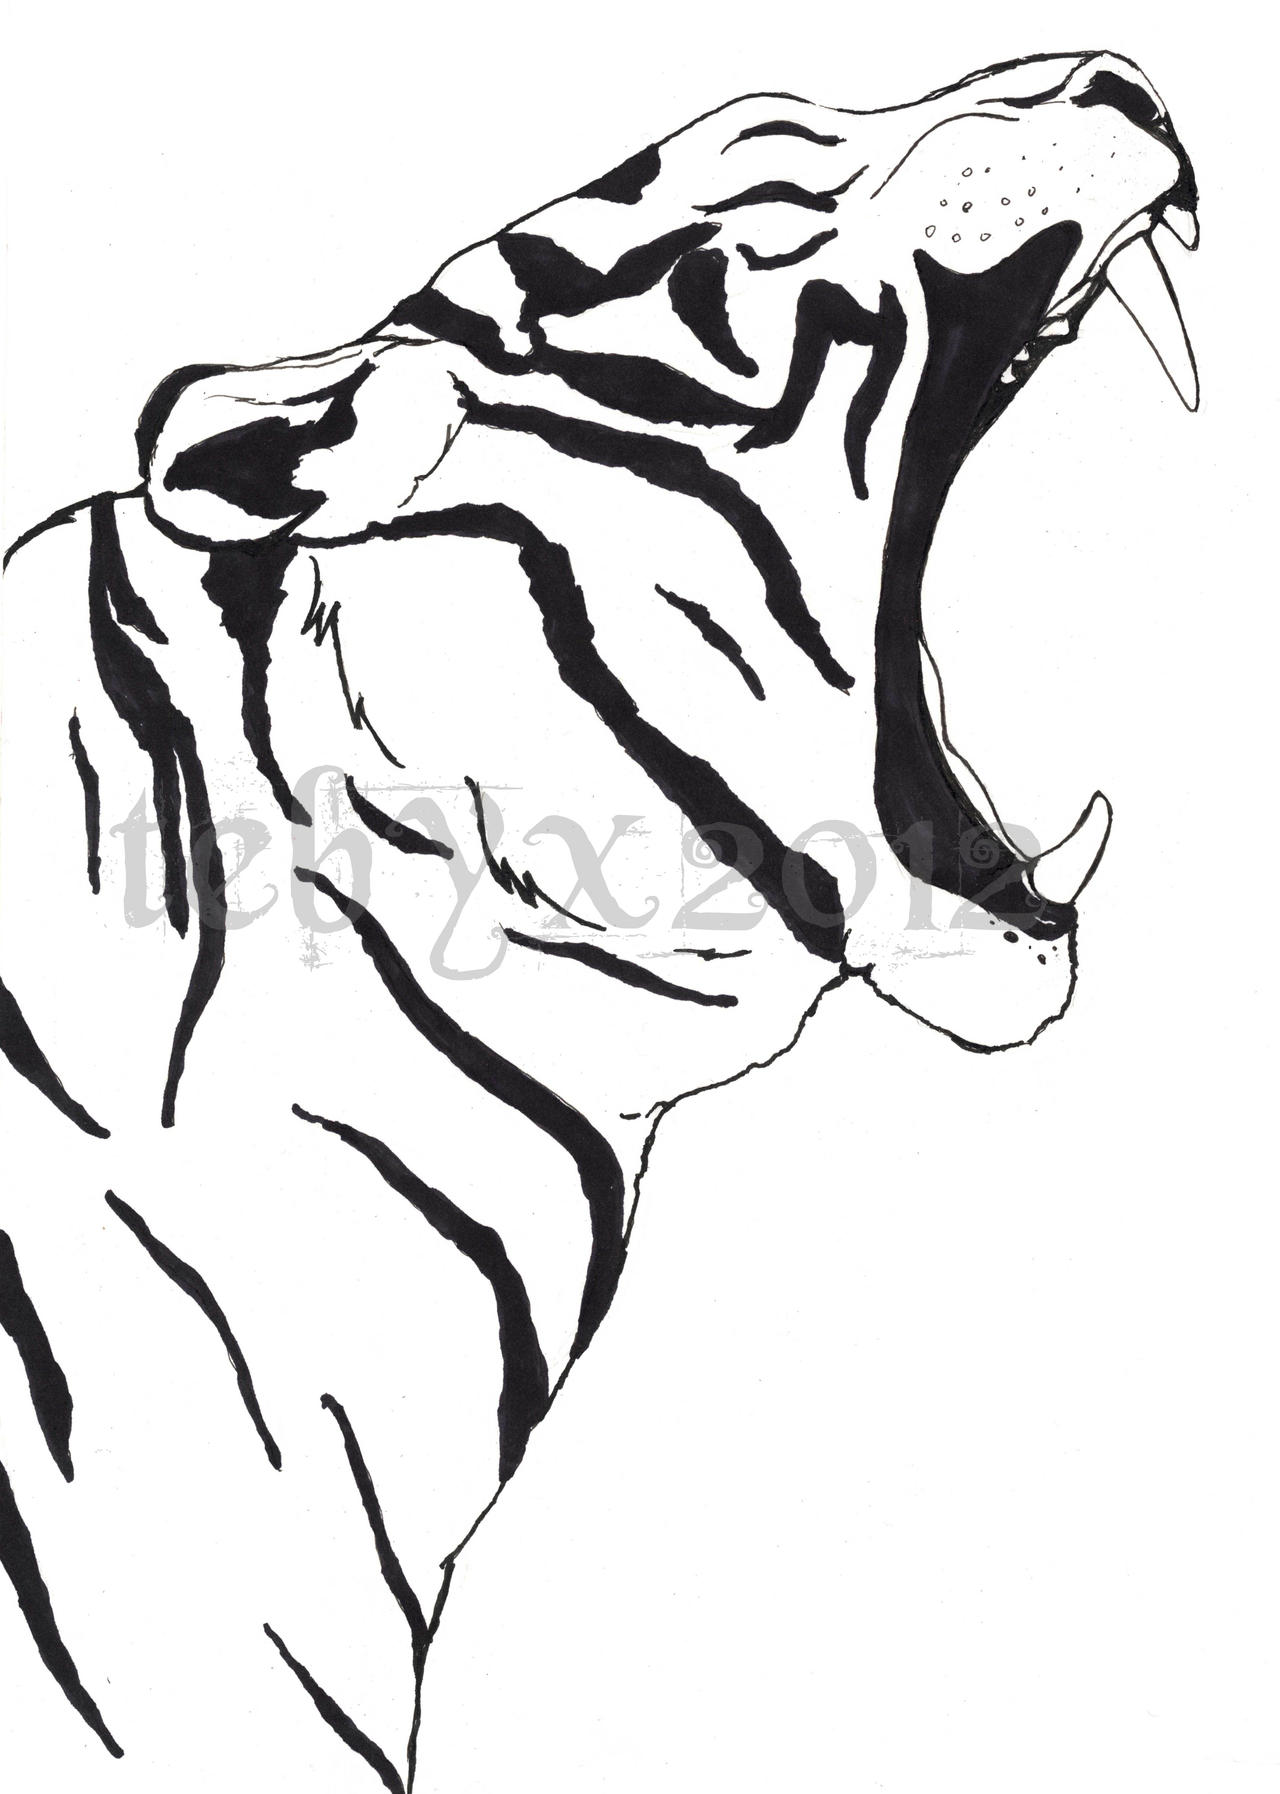 Tiger Line Drawing Easy : Tiger lines by tebyx on deviantart